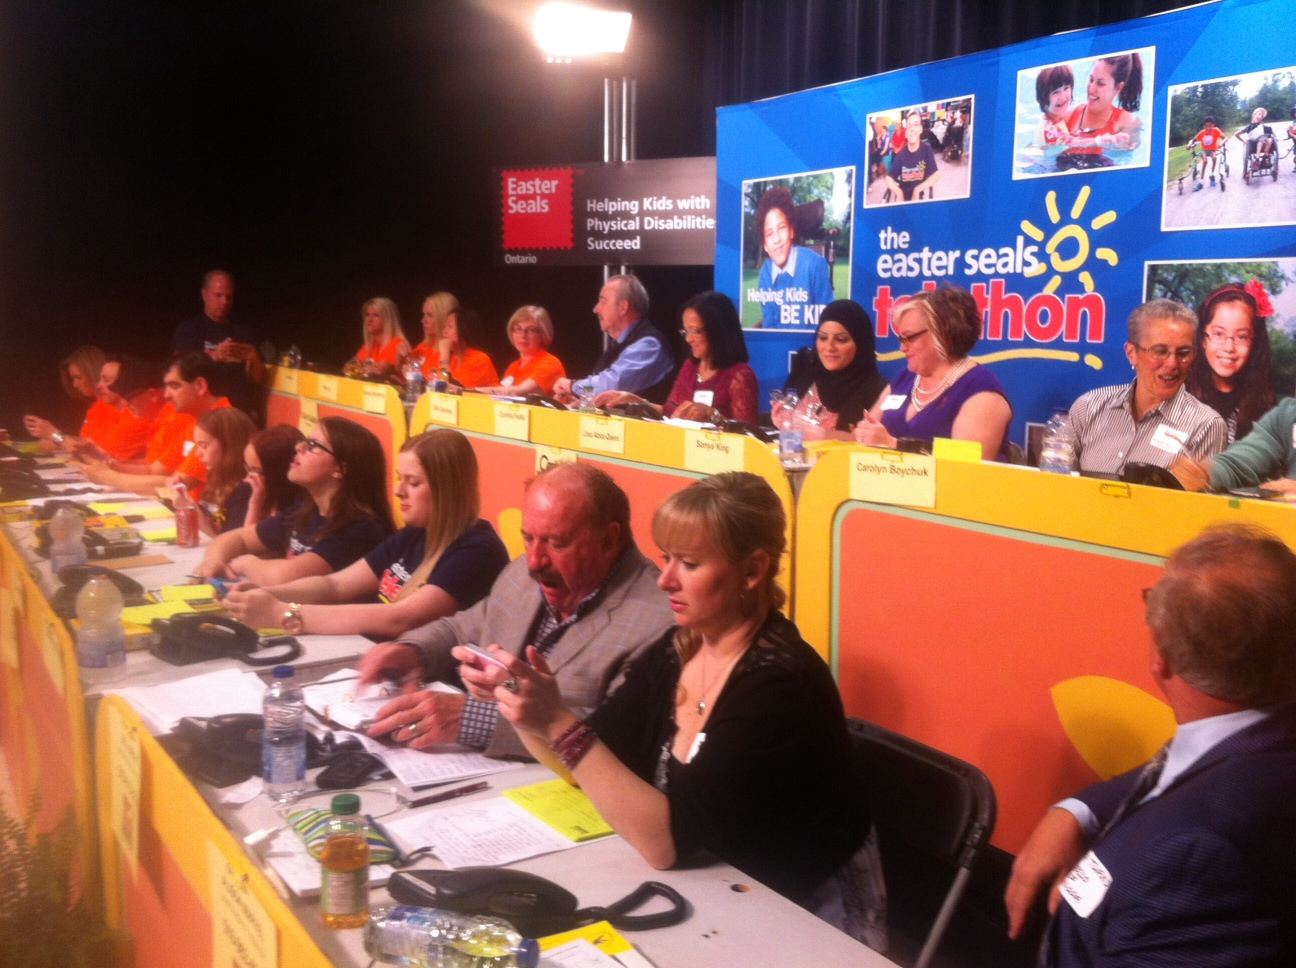 Panelists take calls during the 31st annual Easter Seals Telethon, April 13, 2014. (Photo by Adelle Loiselle)